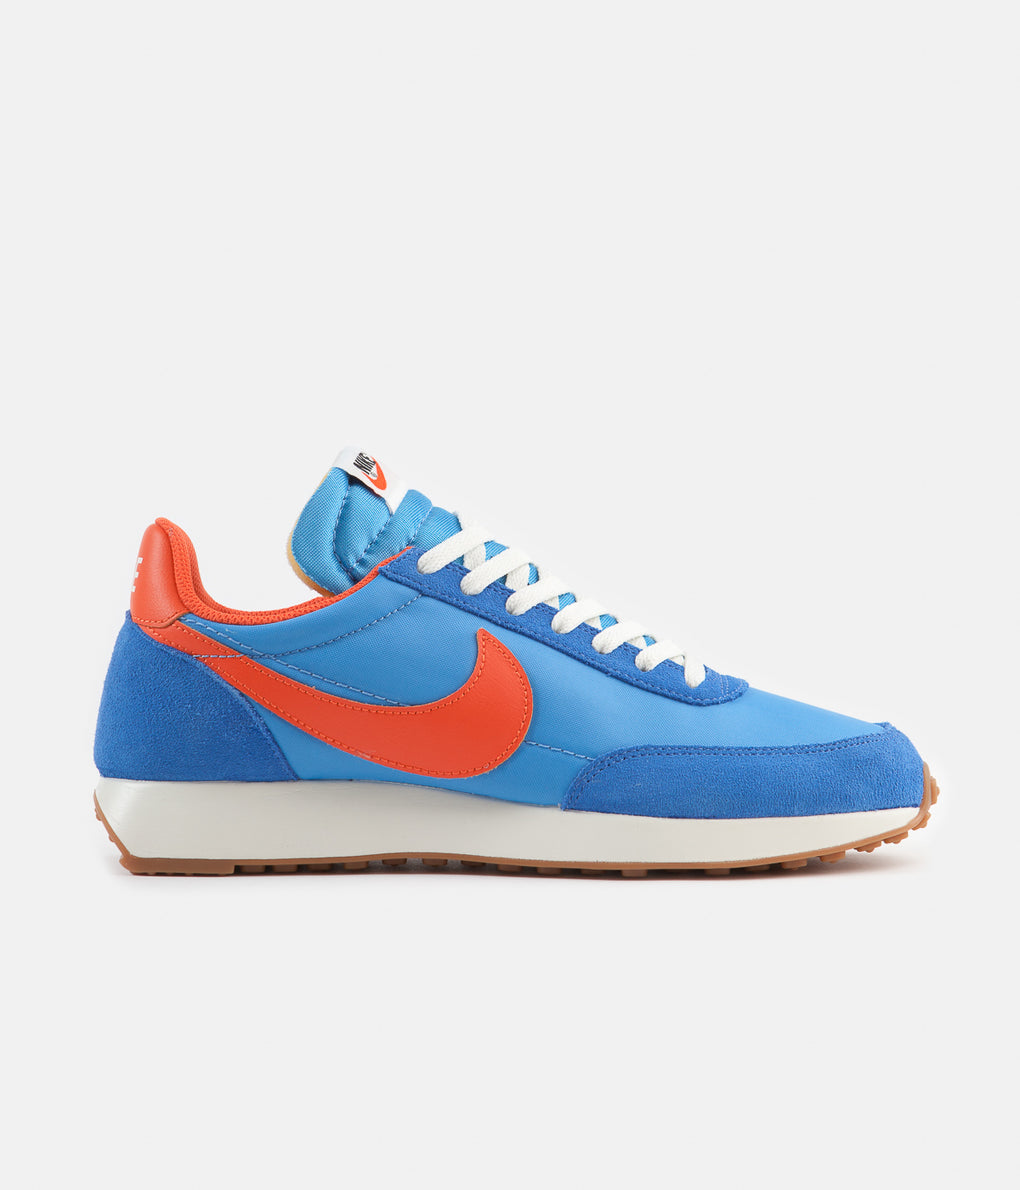 Nike Air Tailwind 79 Shoes - Pacific Blue / Team Orange - University Blue